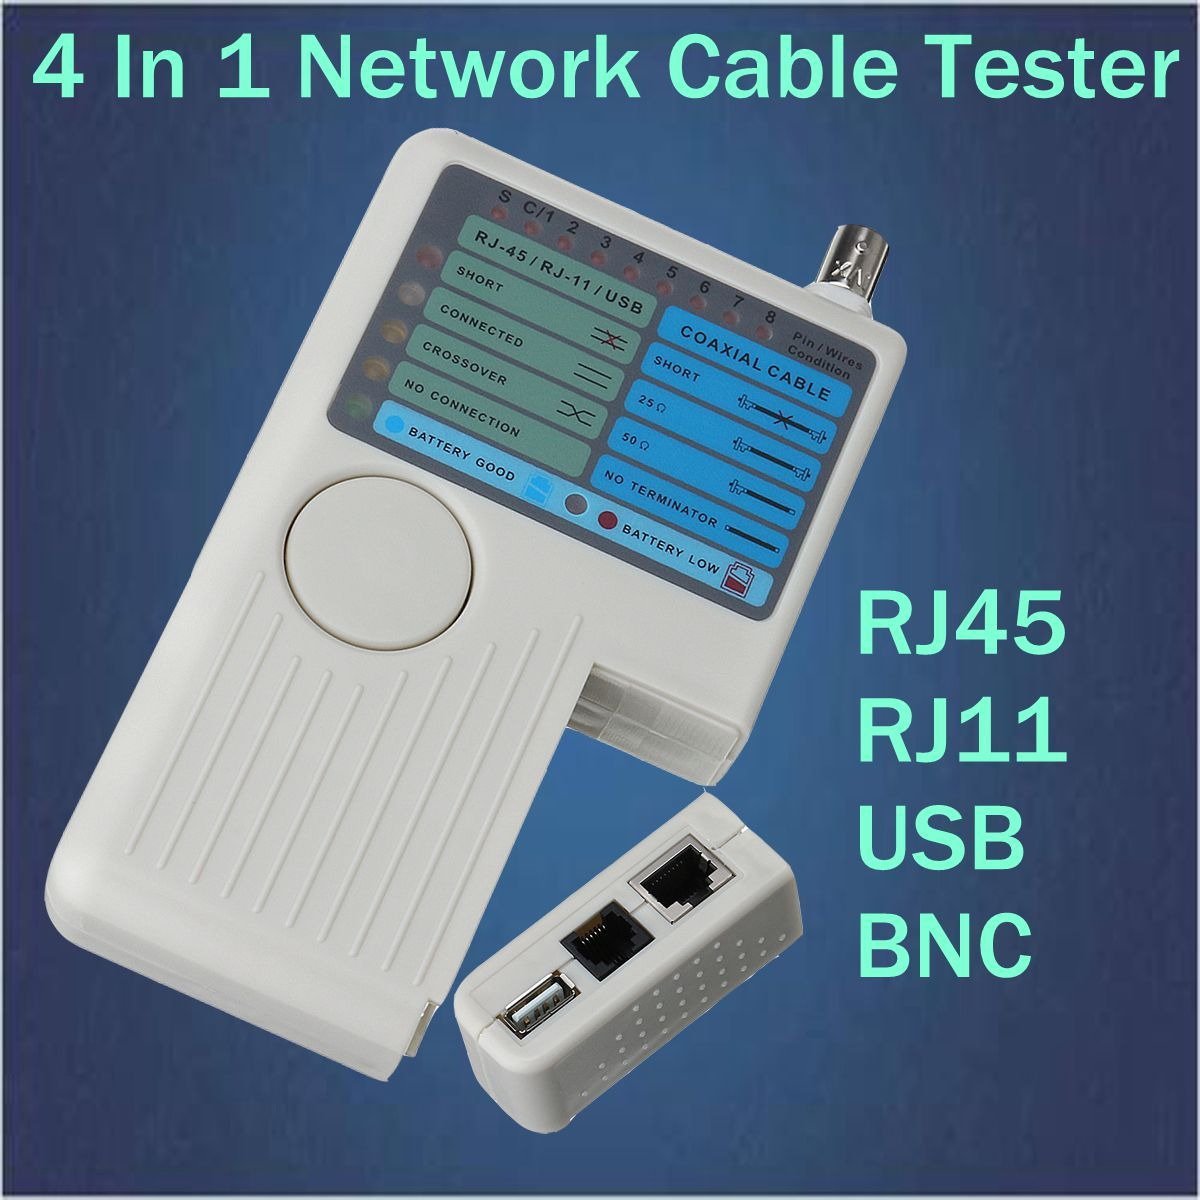 4 in 1 network cable rj45 rj11 usb bnc lan cable cat5 cat6 wire network cable tester banggood 4 in 1 network cable rj45 rj11 usb bnc lan cable  [ 1200 x 1200 Pixel ]